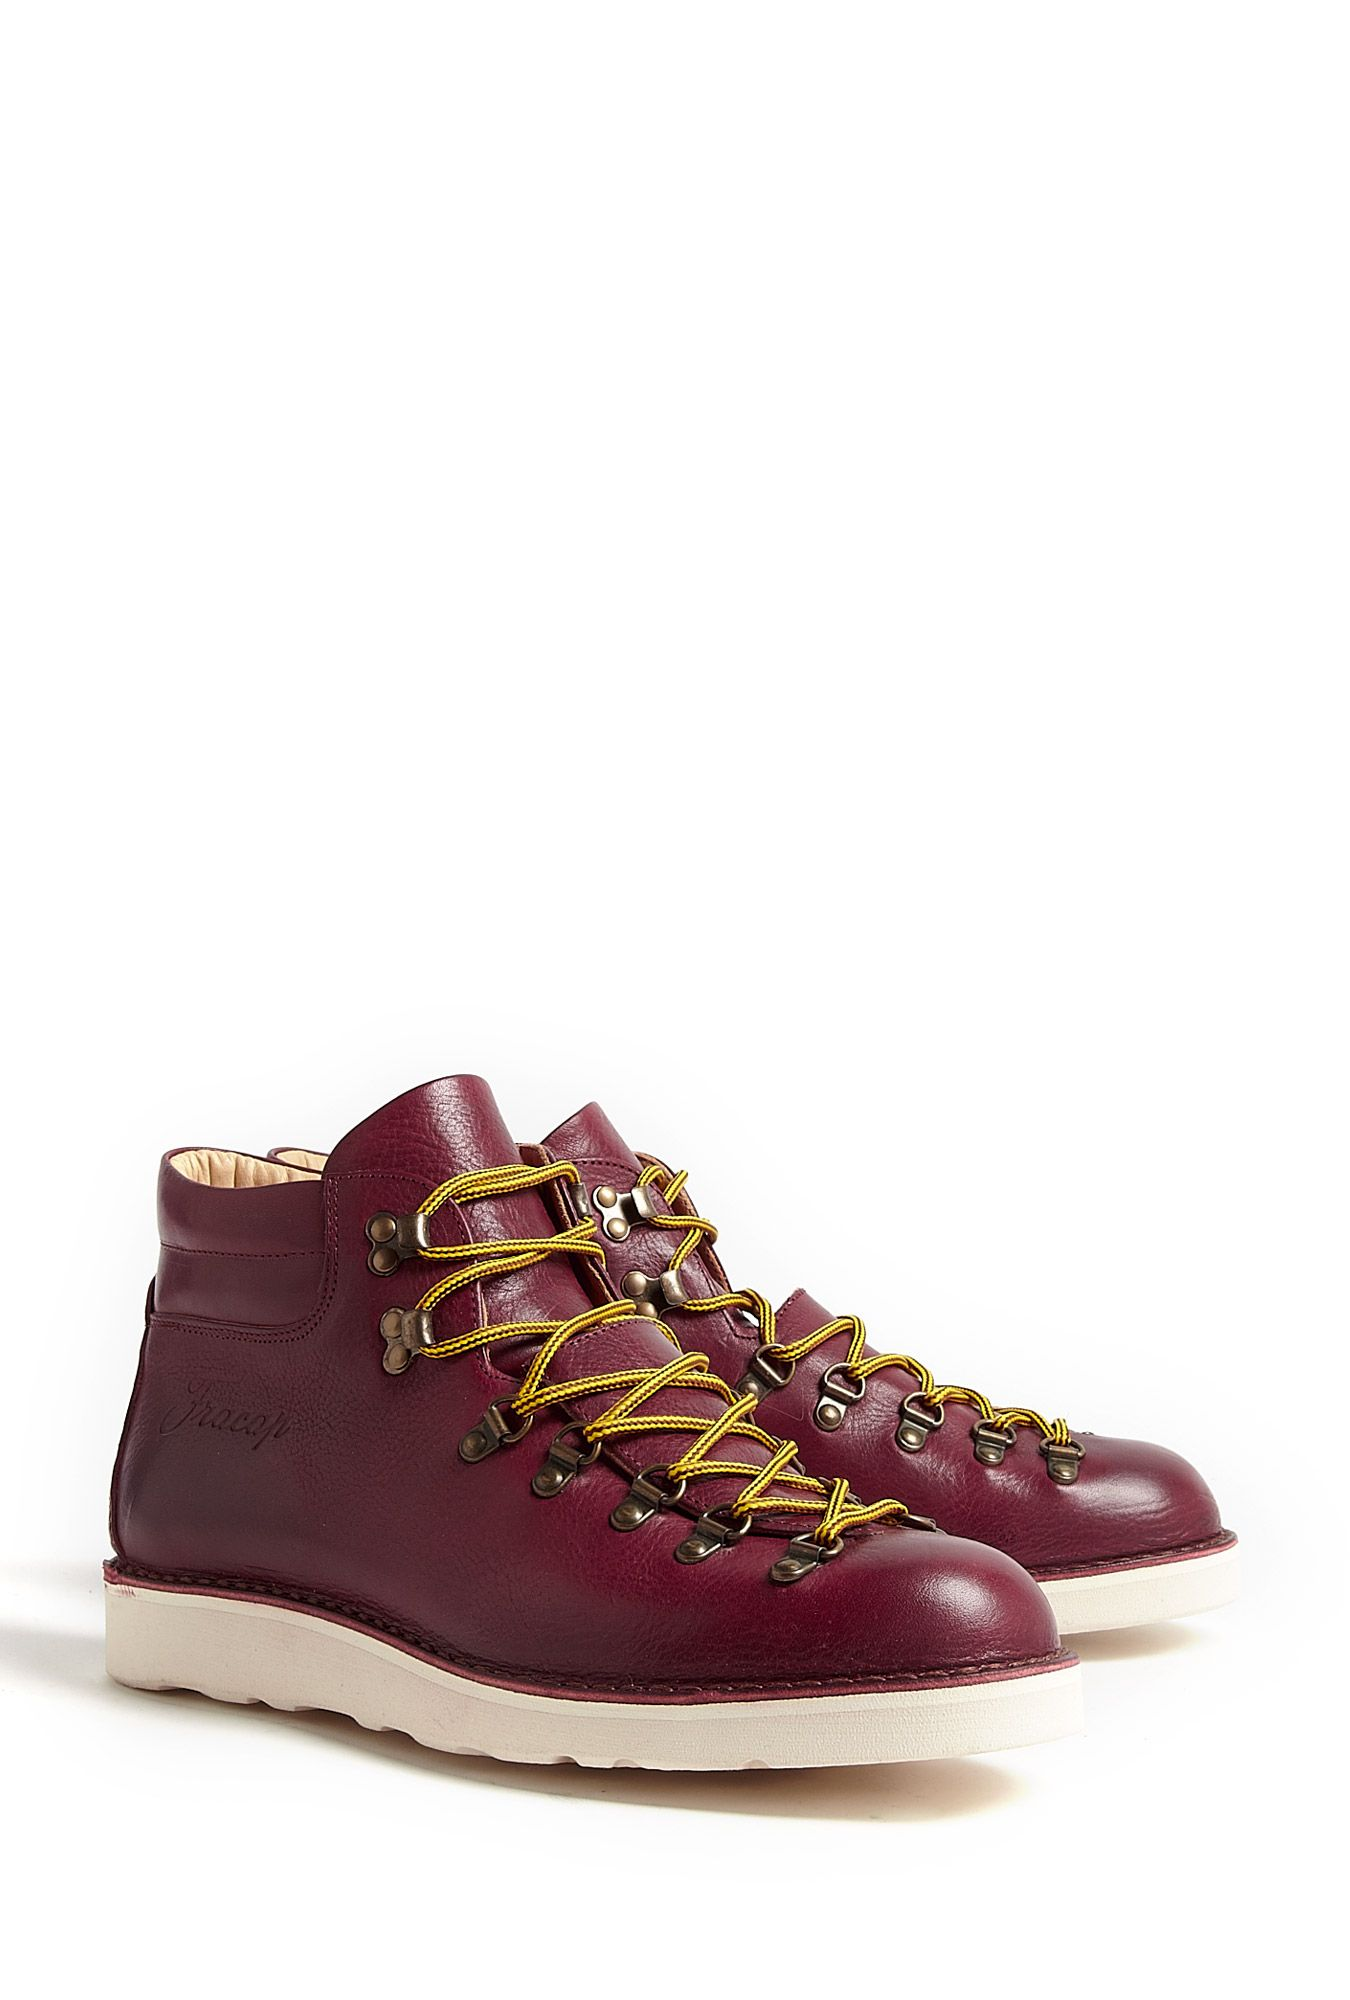 8ca72a489a2 FRACAP DEEP RED LEATHER VIBRAM SOLED HIKING BOOTS | Fashion ...